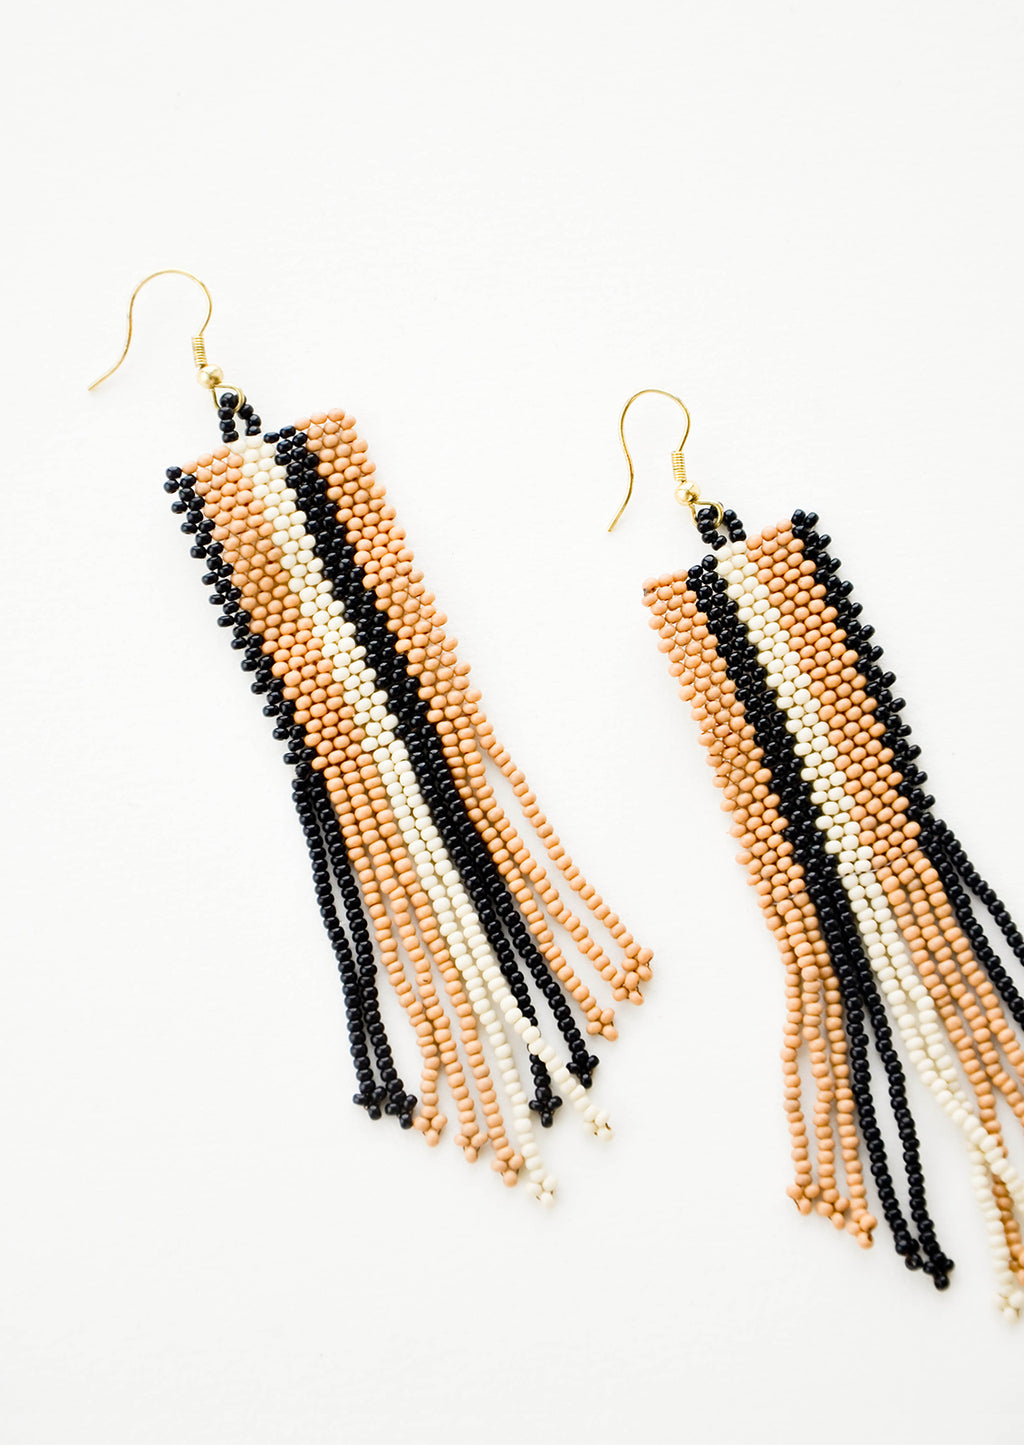 1: Long rectangular beaded fringe earrings with a pattern of black, brown, and white stripes.